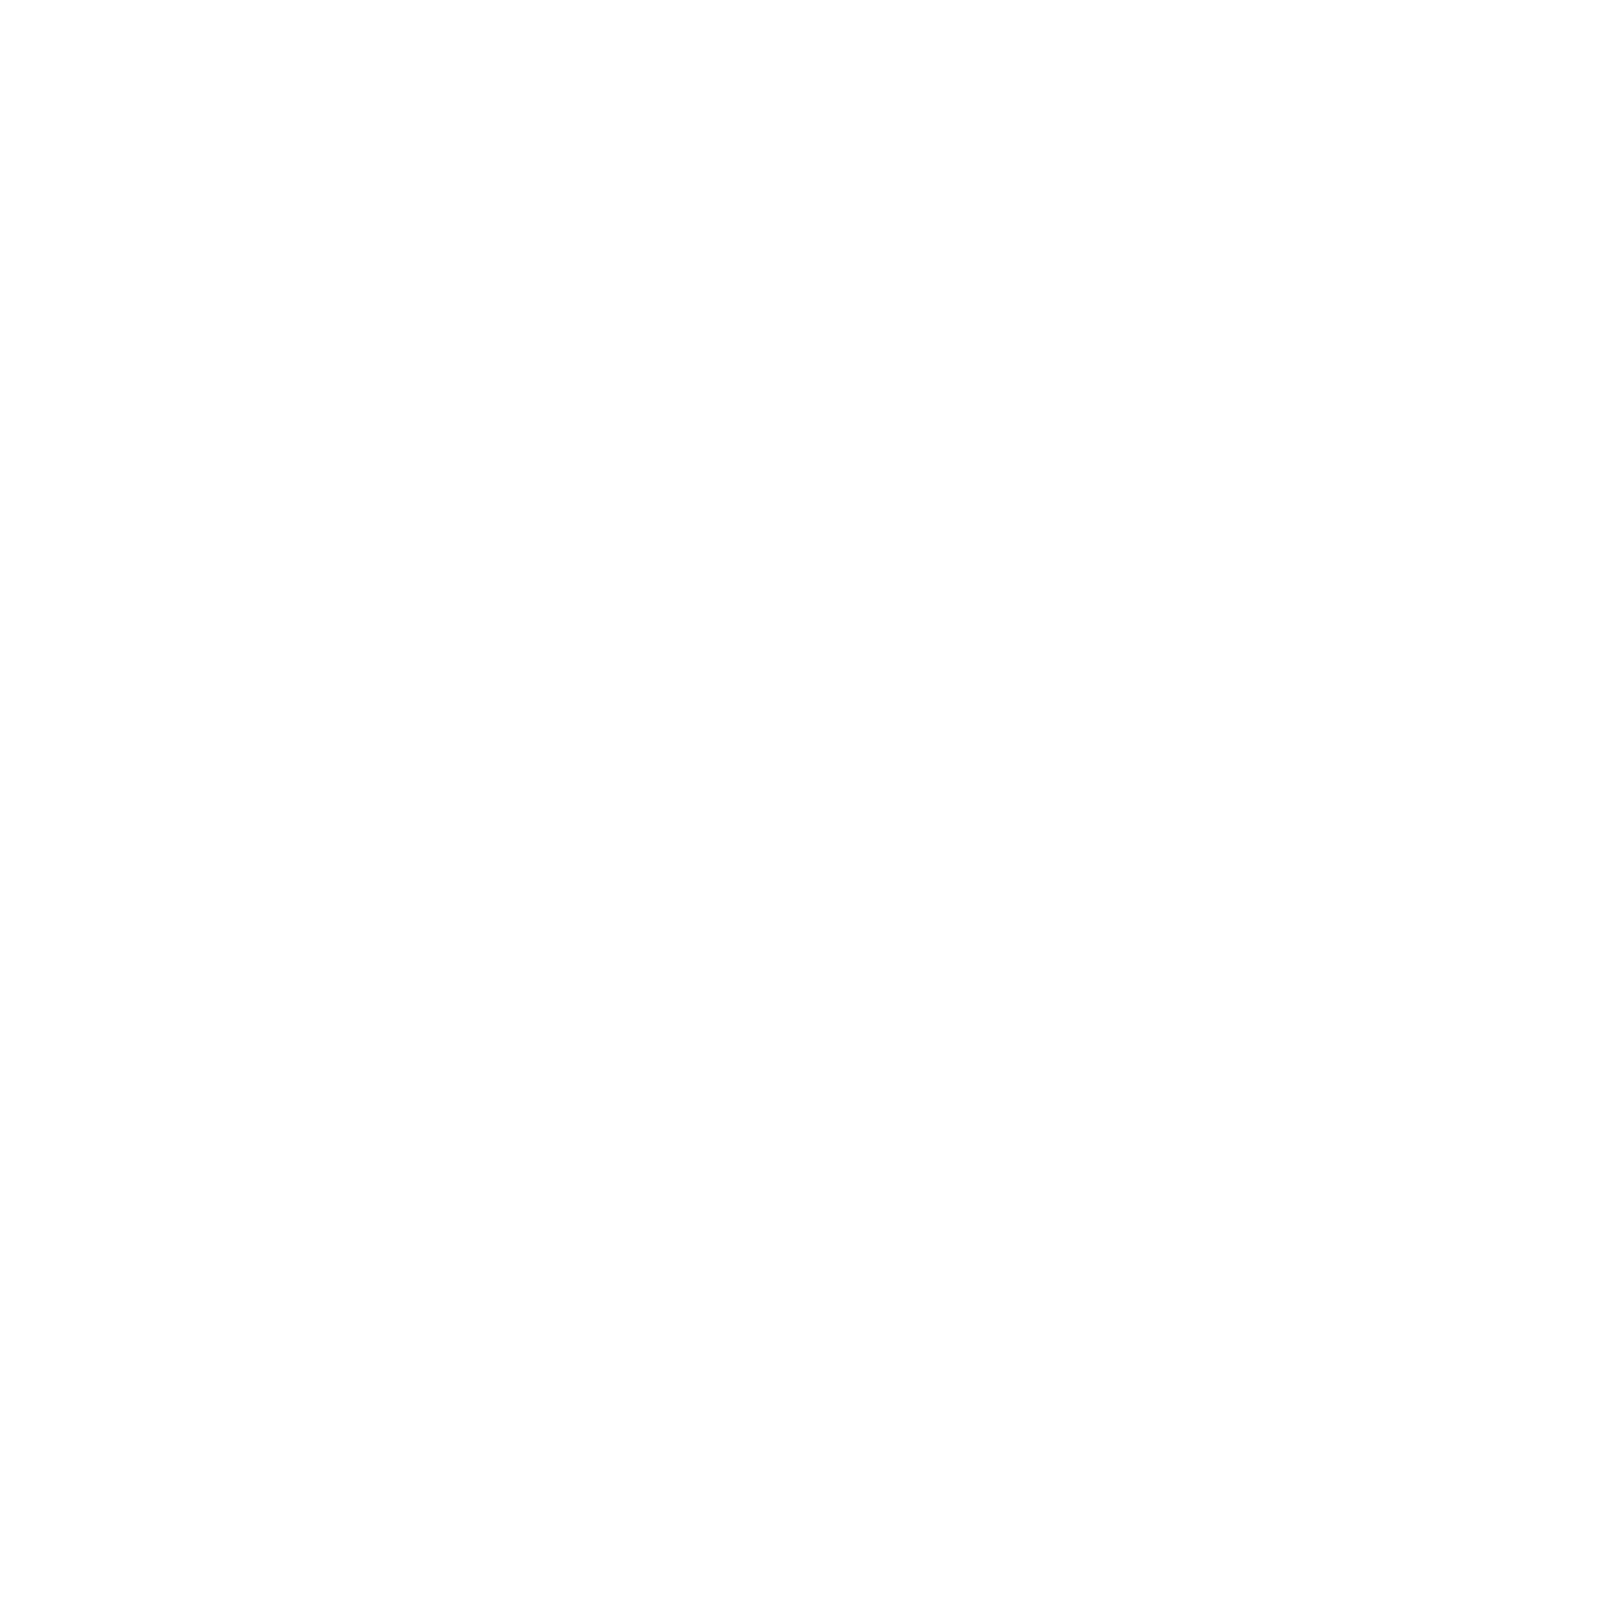 exel-project-logo